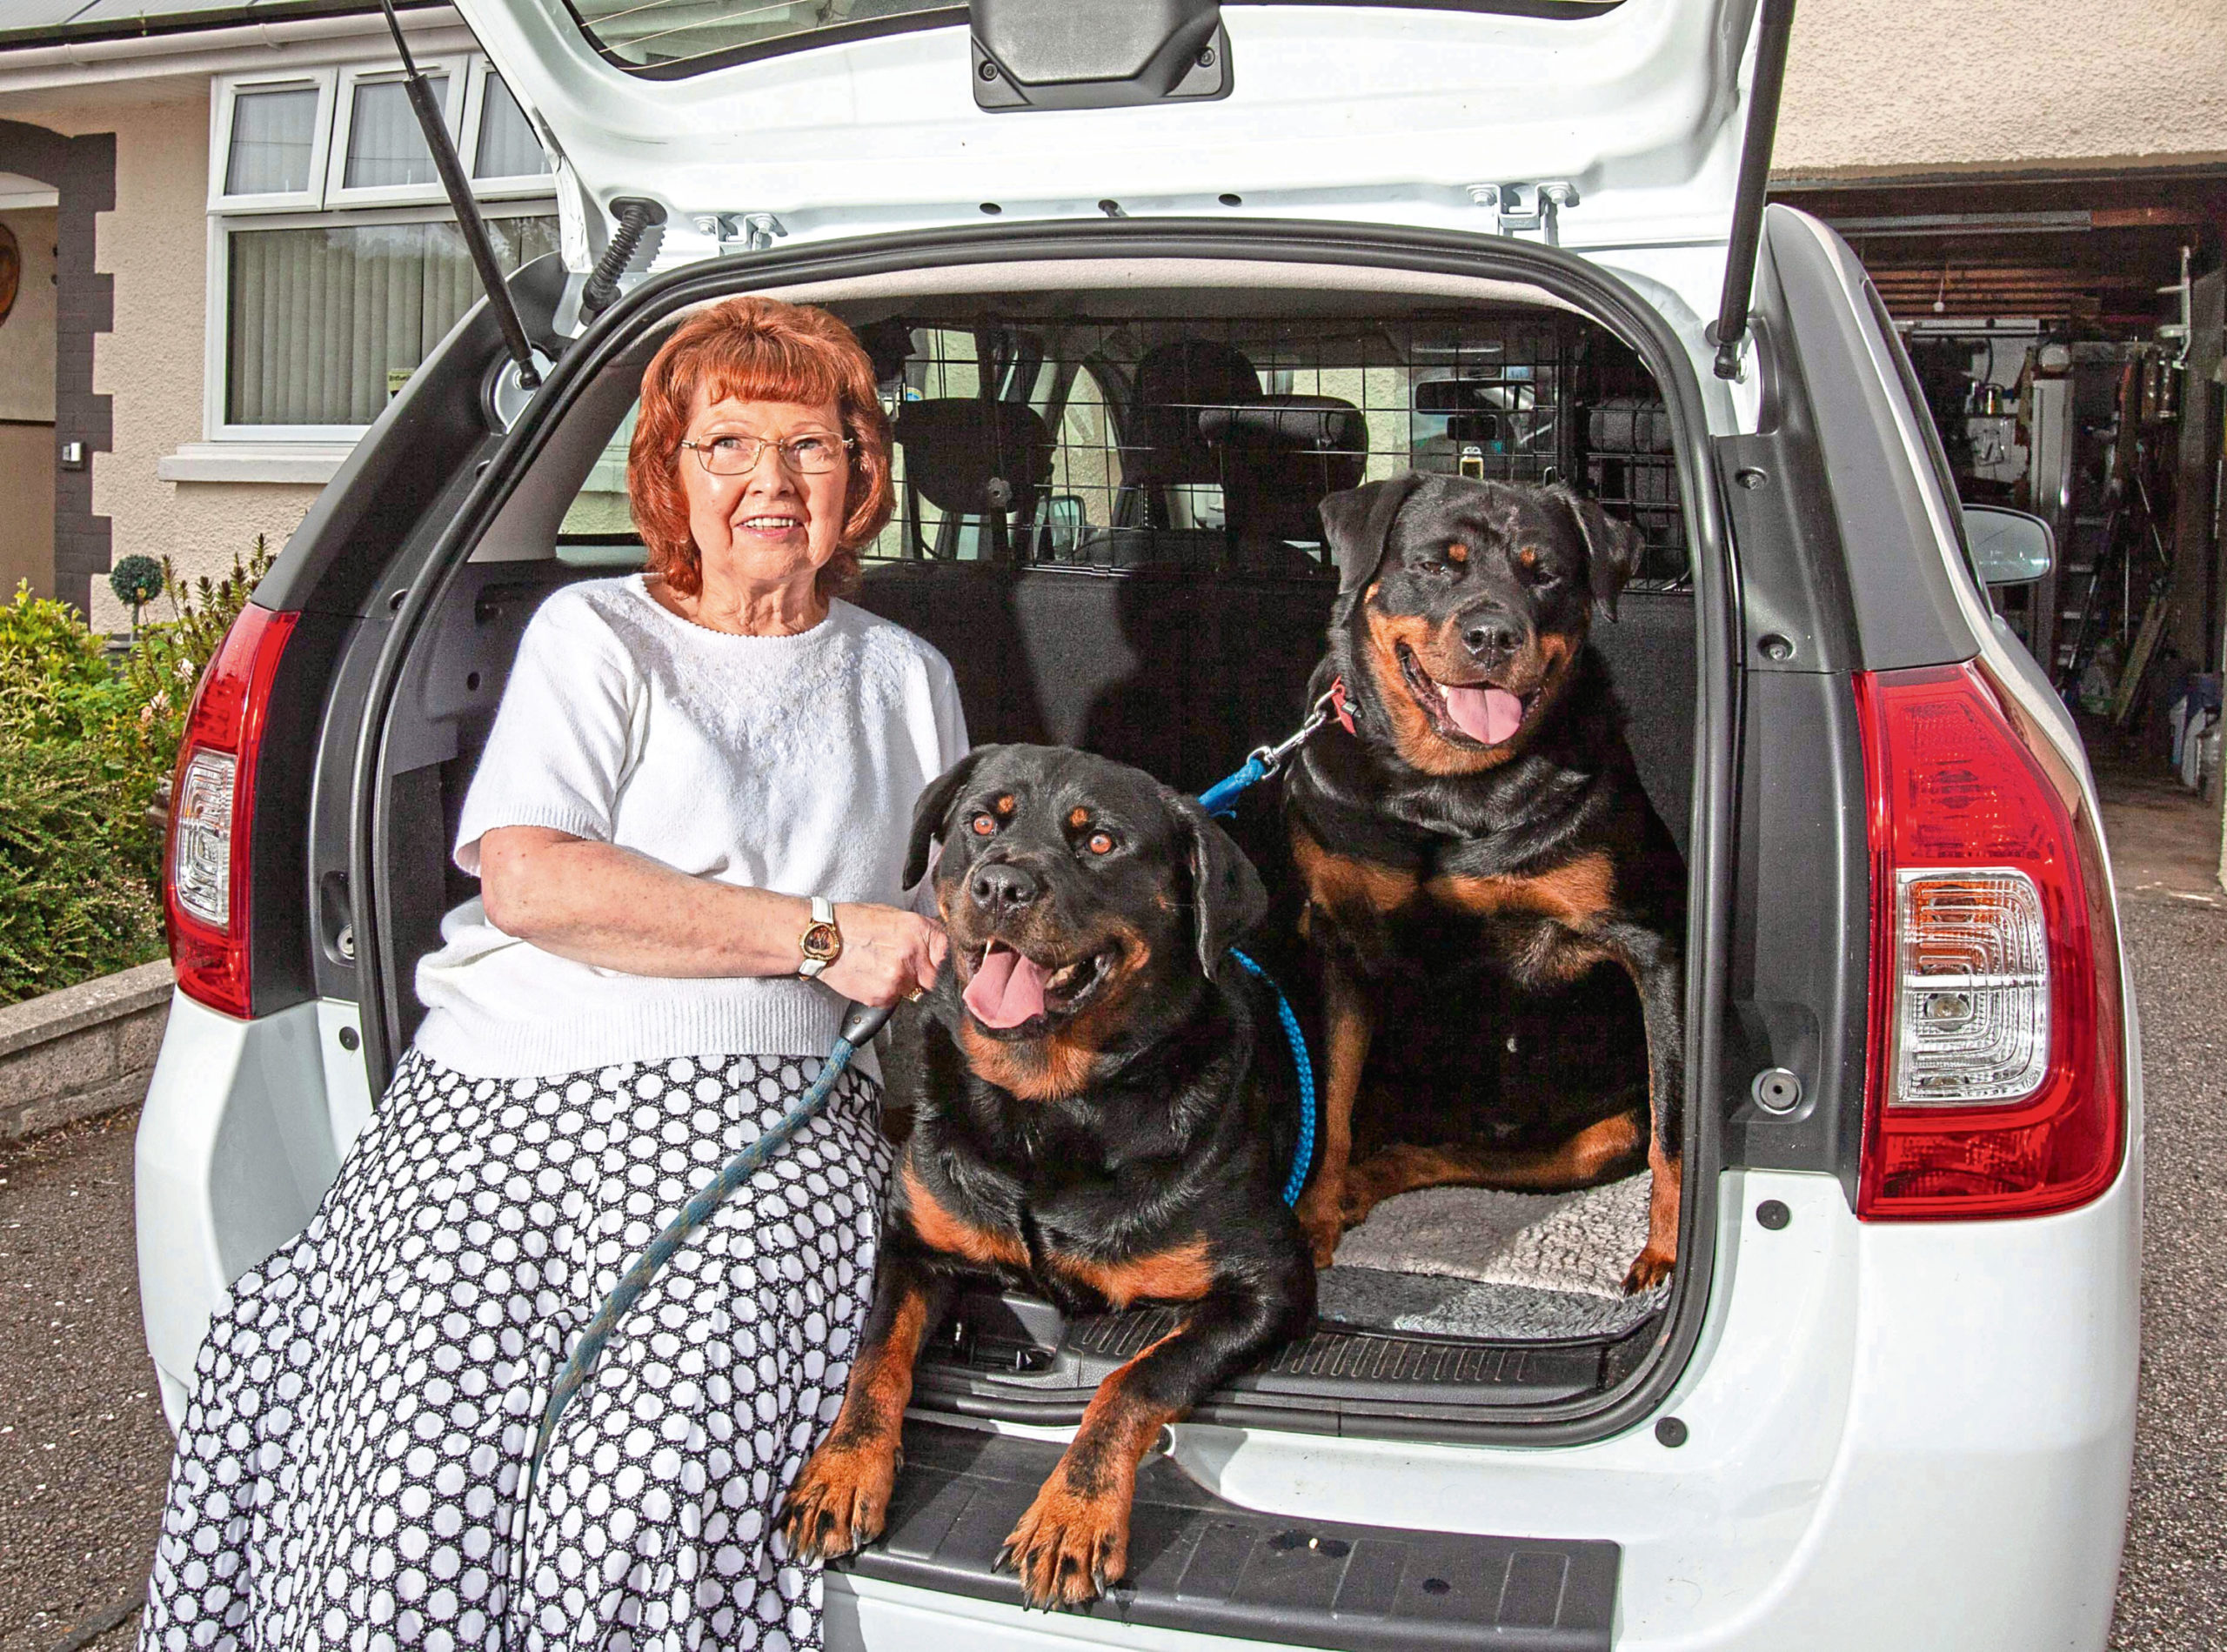 Dacia owner Eileen McDonald with Rottweilers Marsha and Carrie